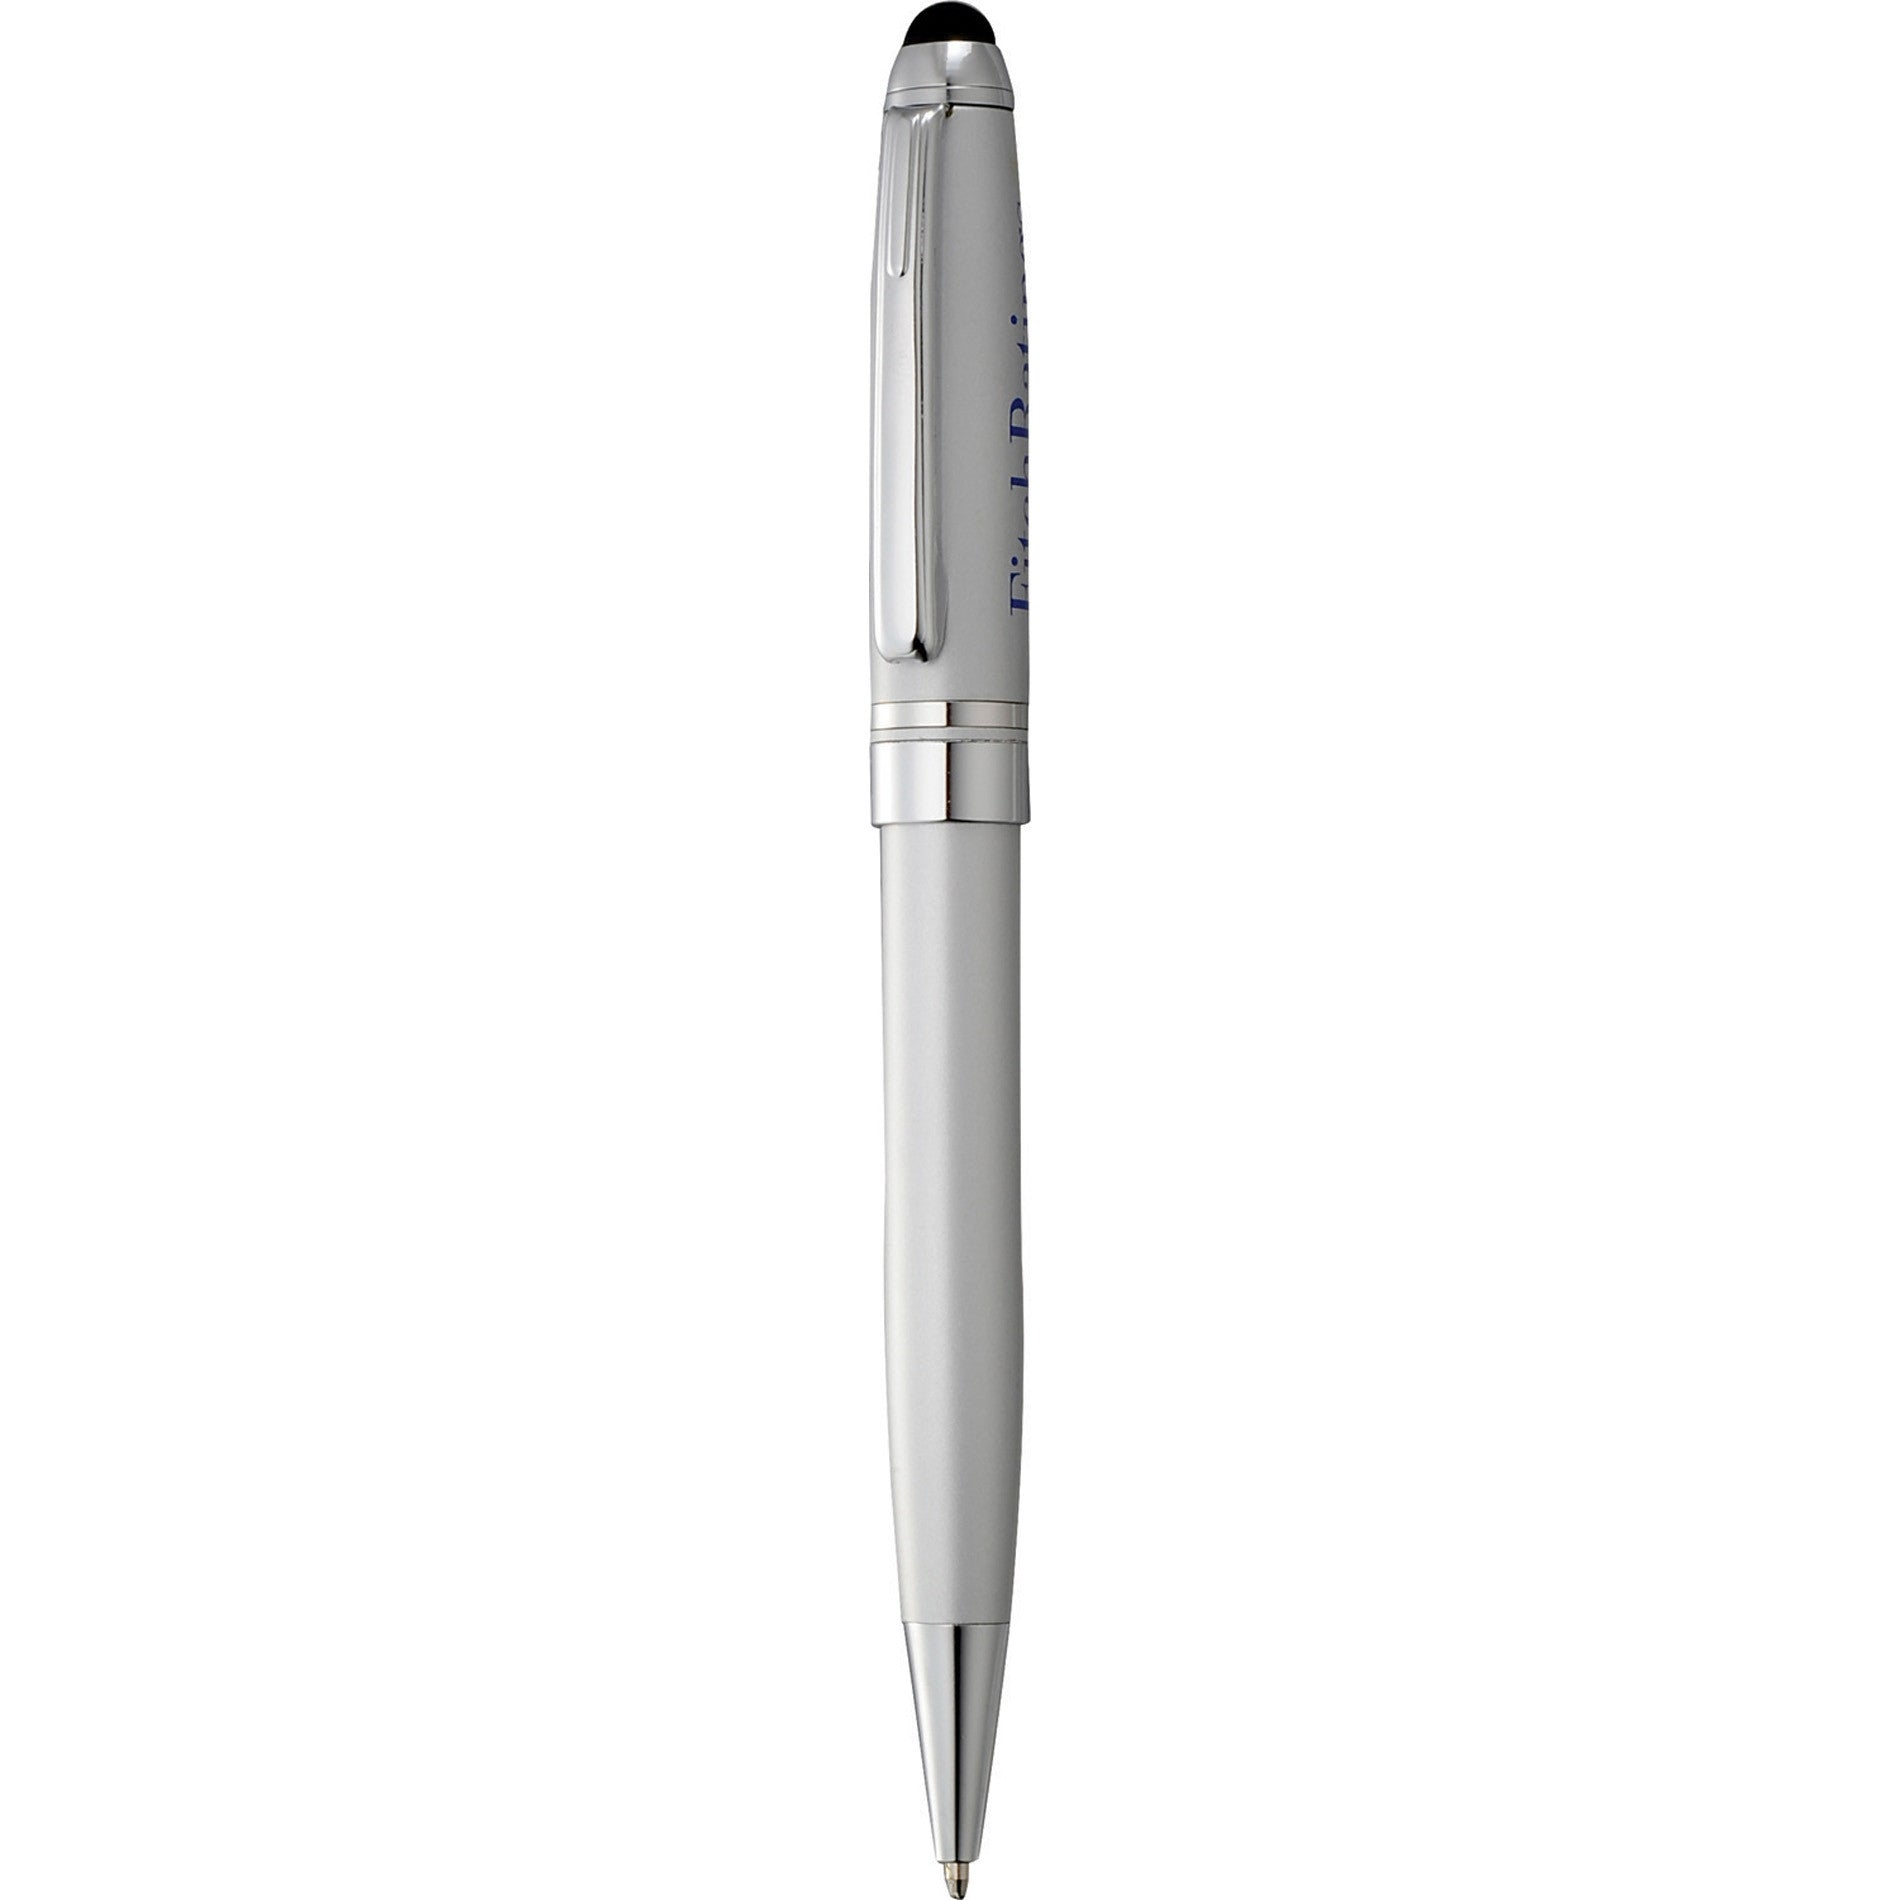 Engraved Stylus Pen